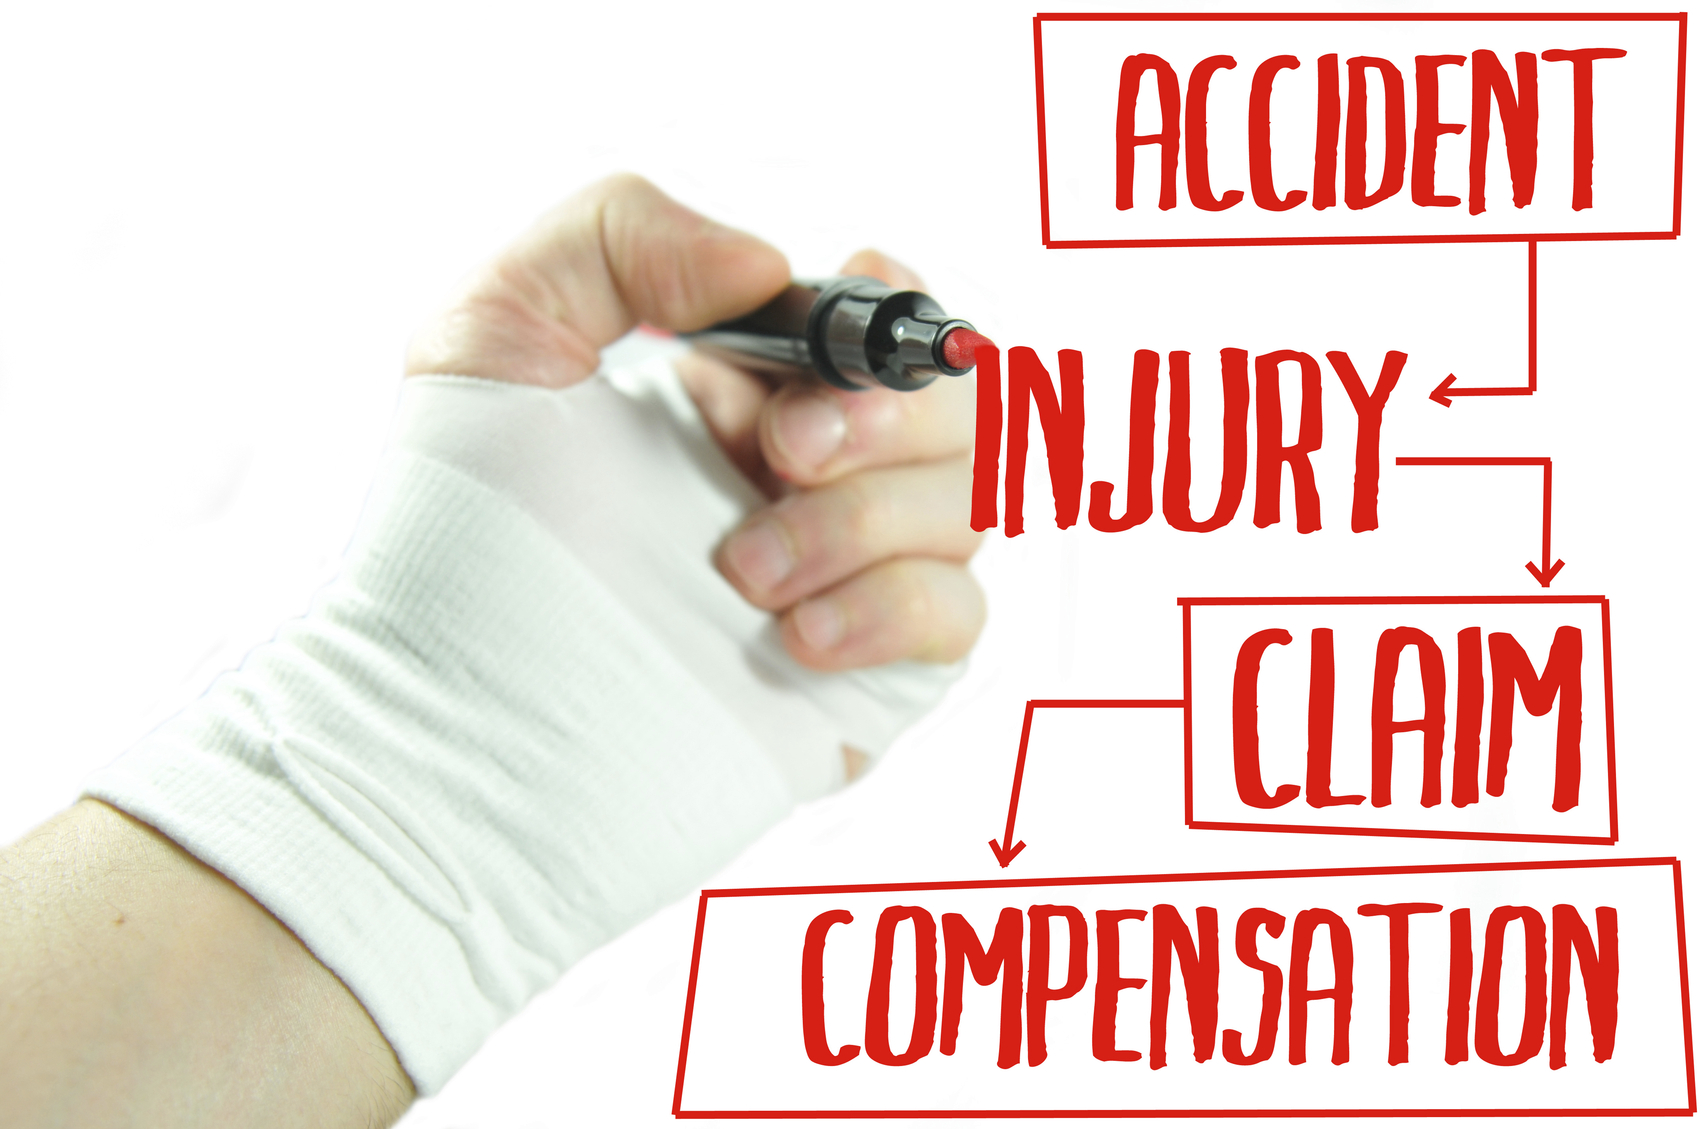 Get the Facts on Workers' Compensation